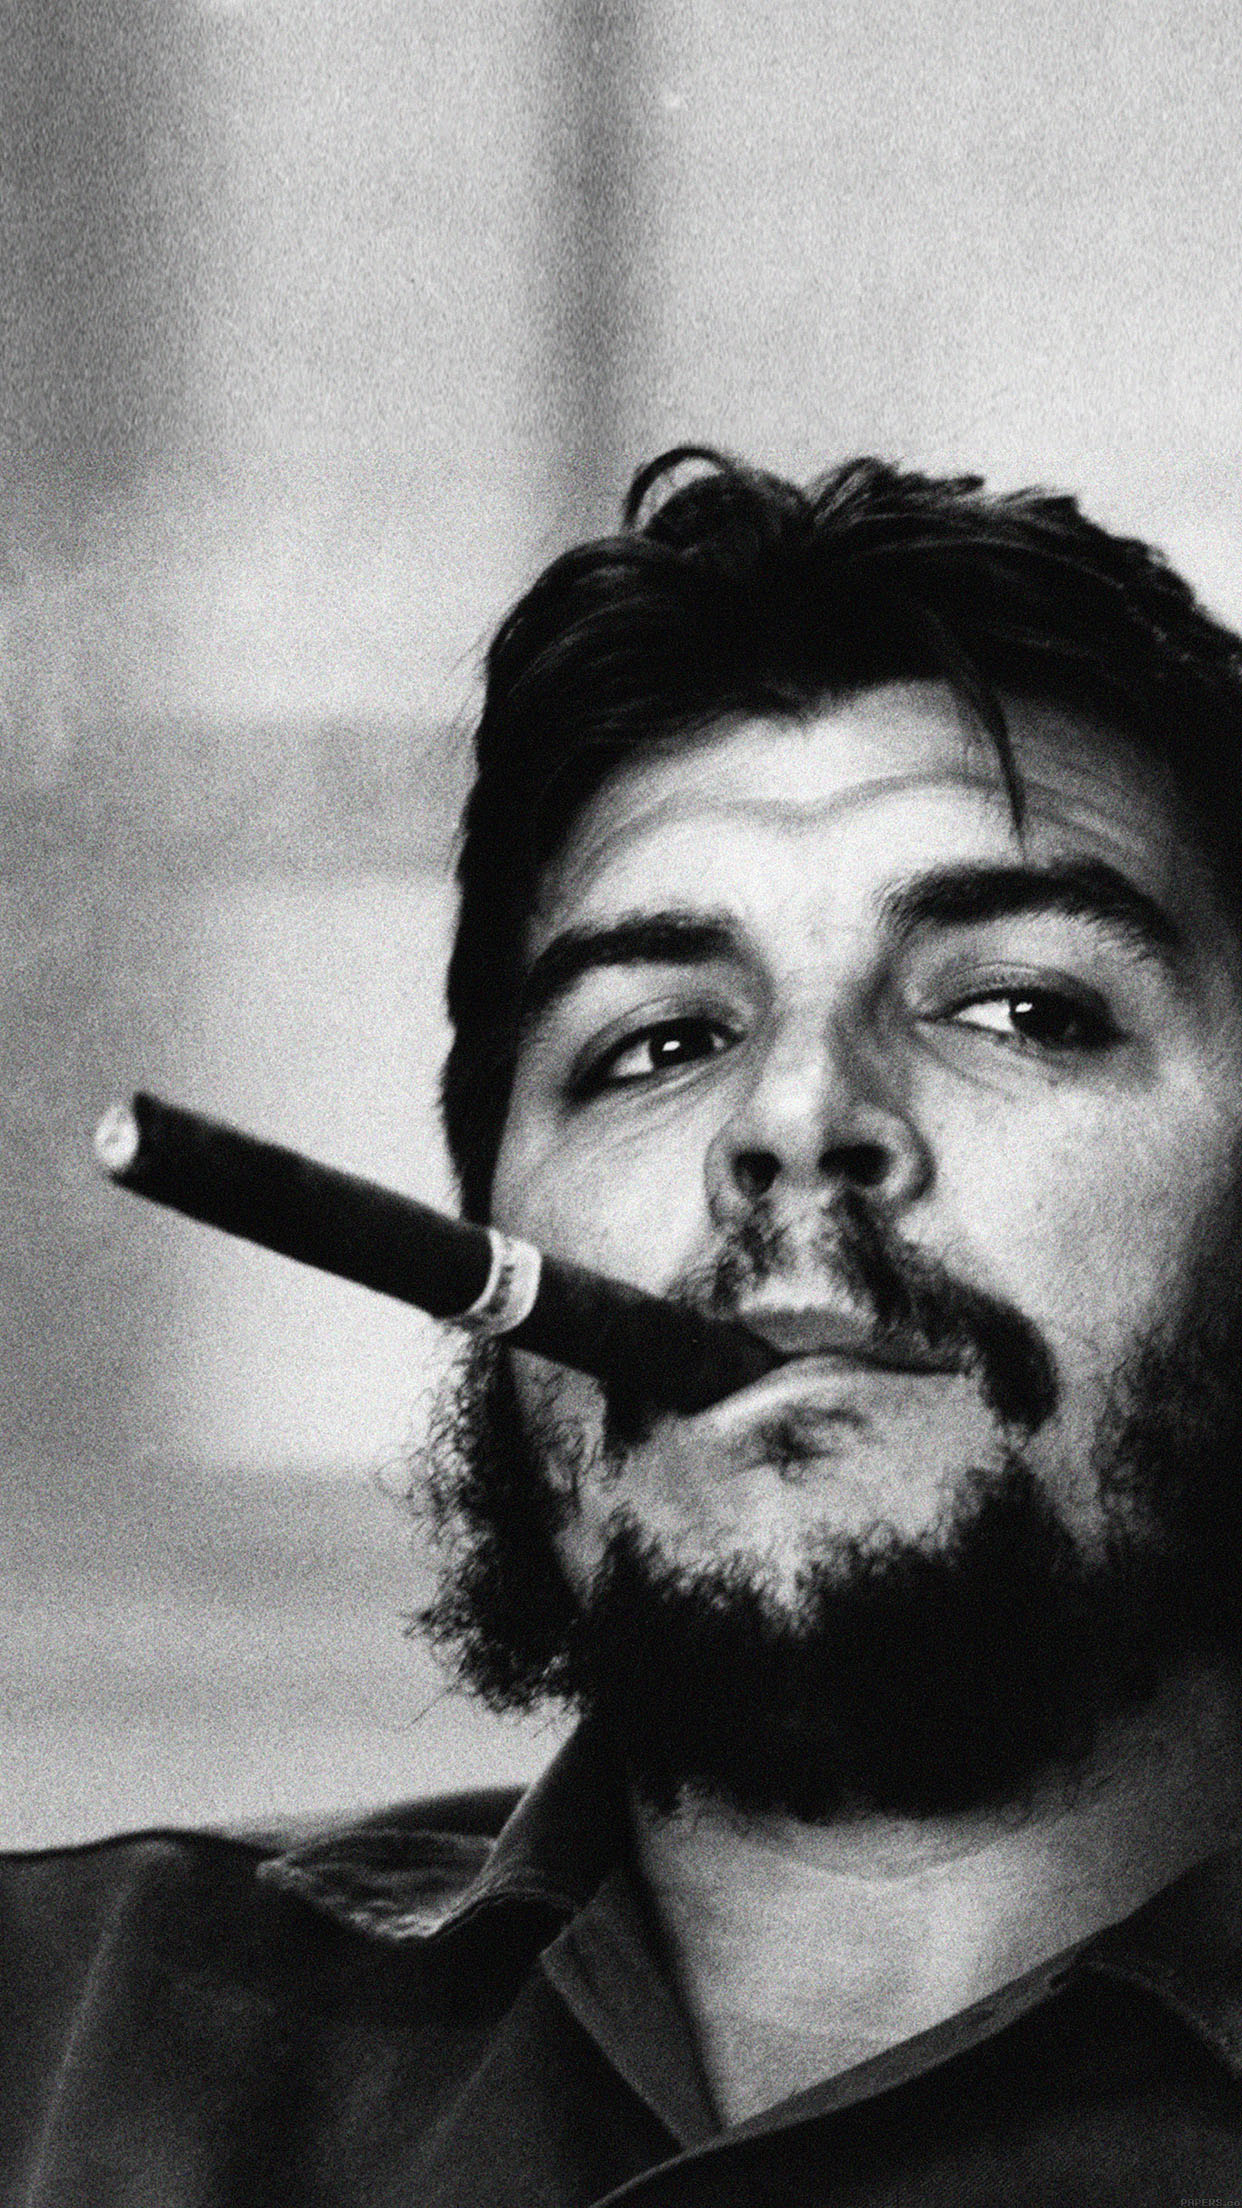 Wallpaper Cute For Iphone 6 Plus Ha79 Wallpaper Che Guevara Face Papers Co